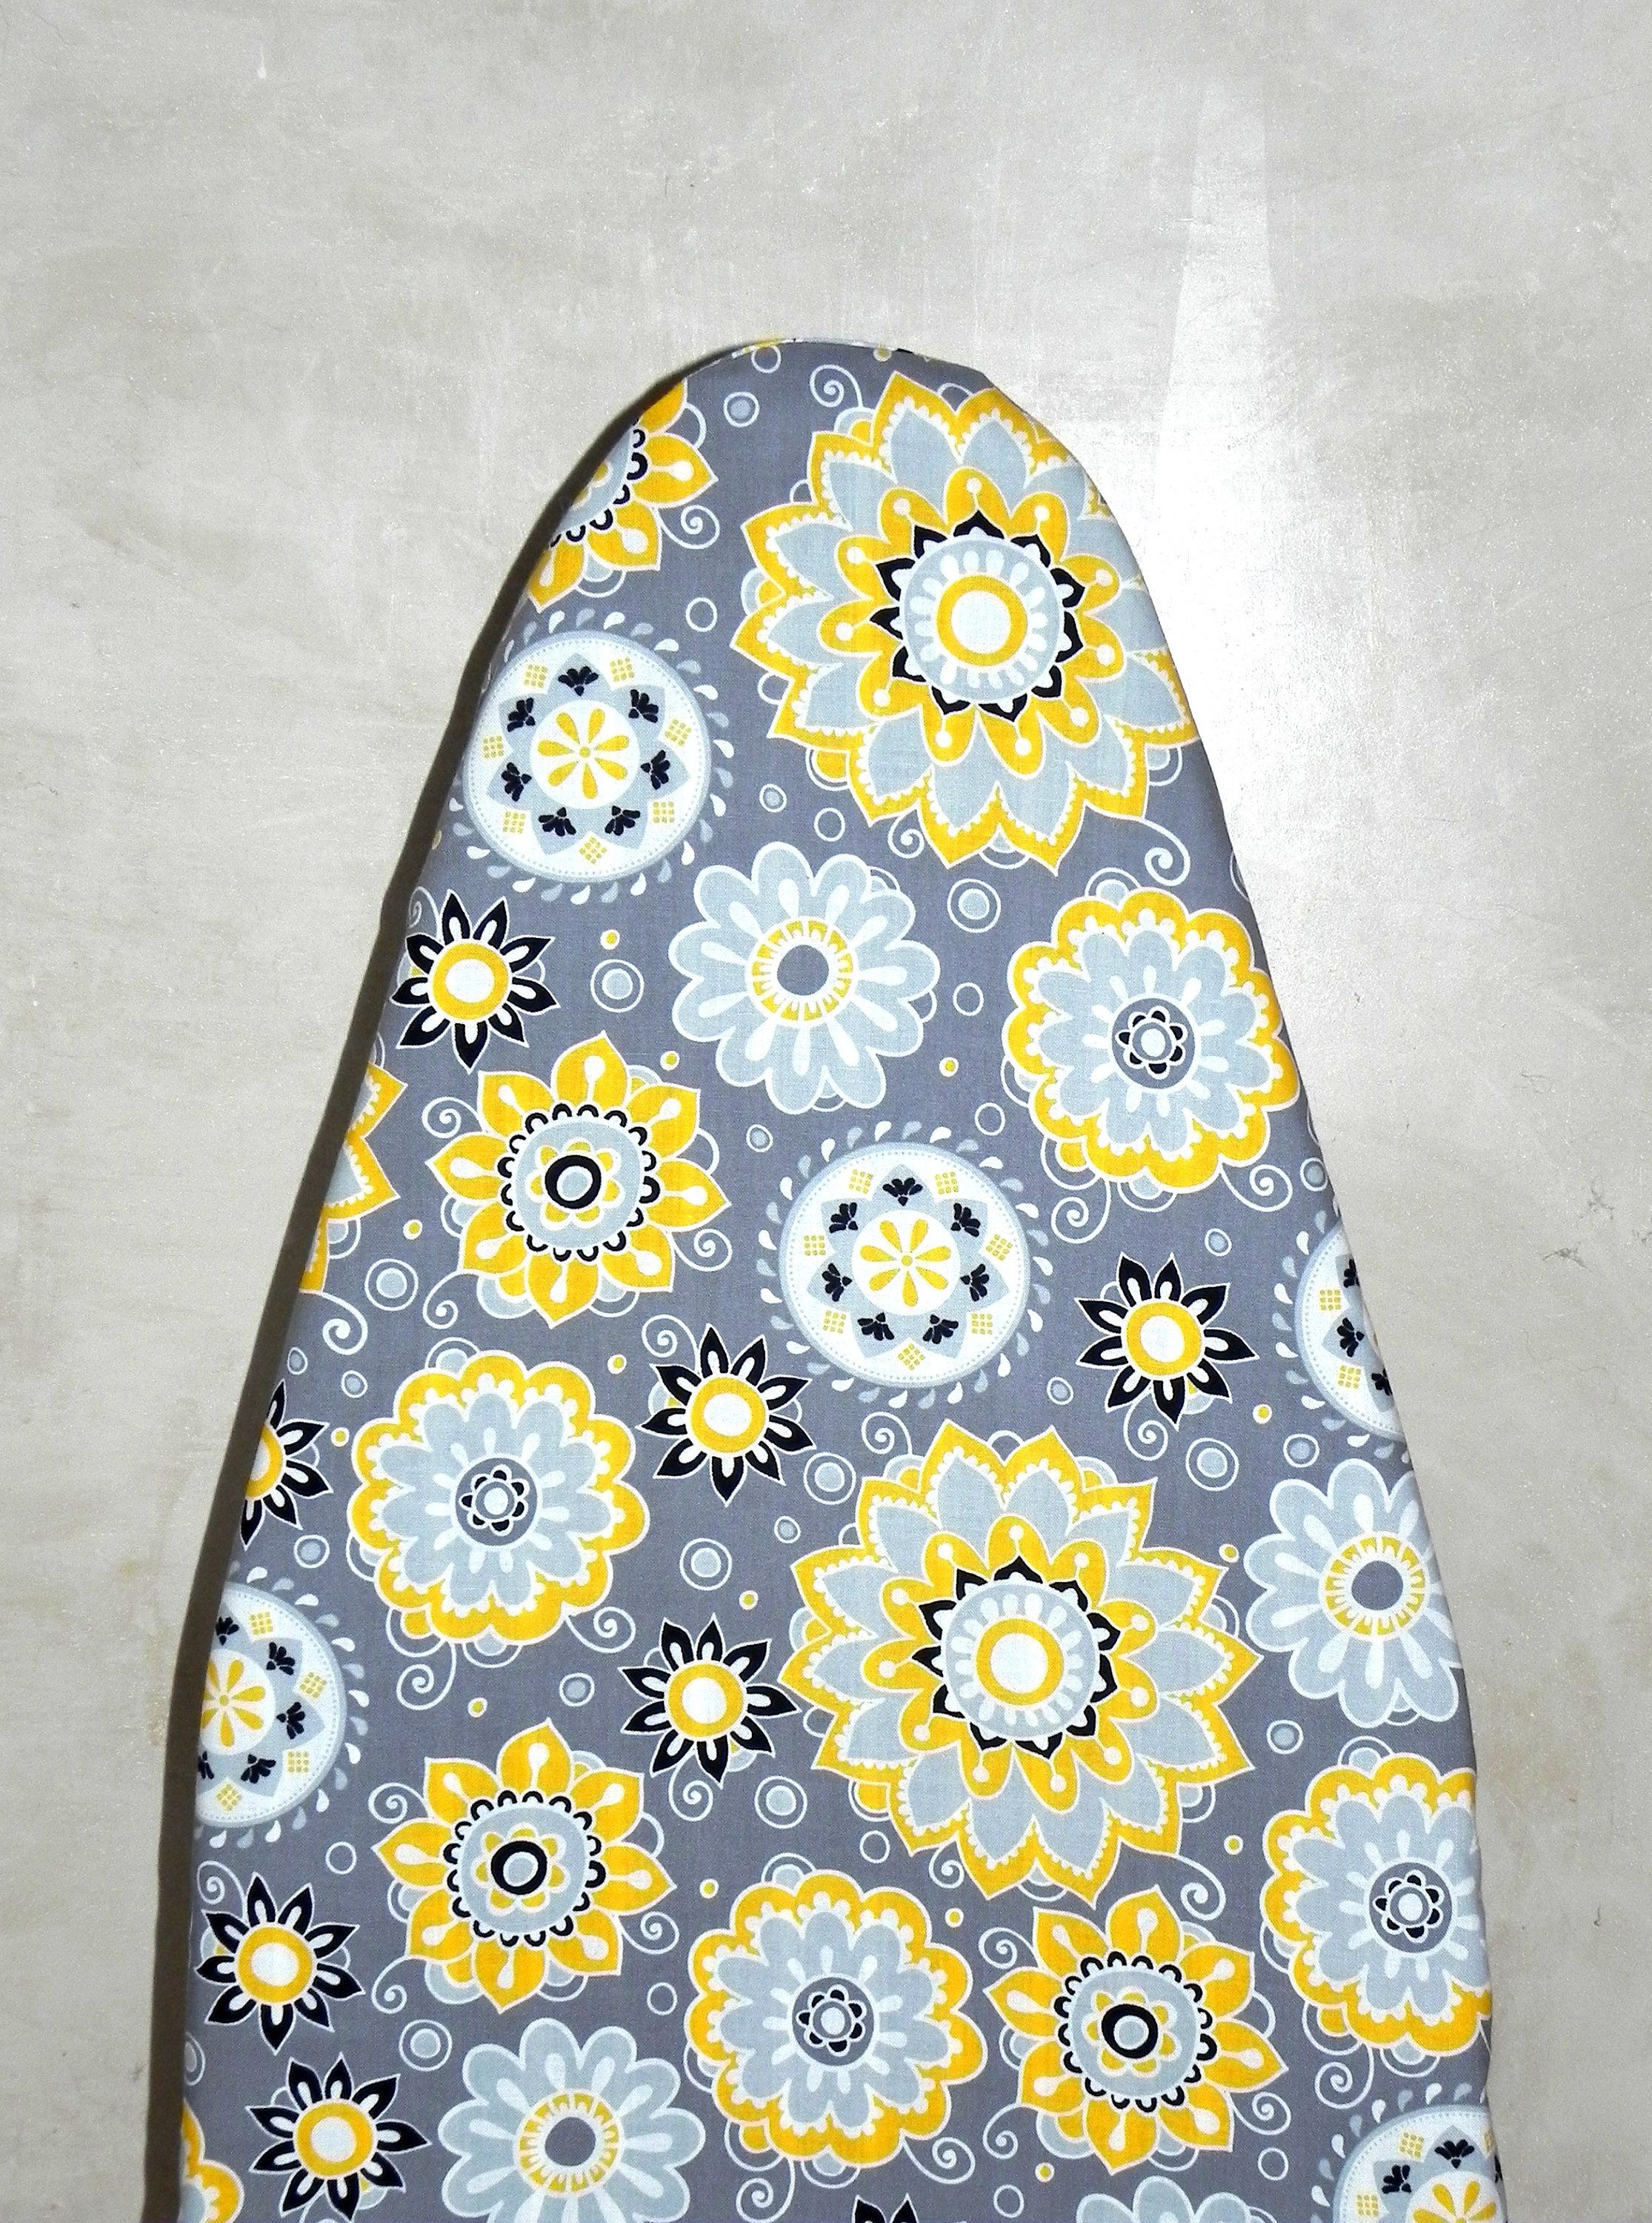 Tabletop Ironing Board Cover   Grey, Yellow, Black And White Flowers    Laundry And Housewares By GaranceCouture On Etsy